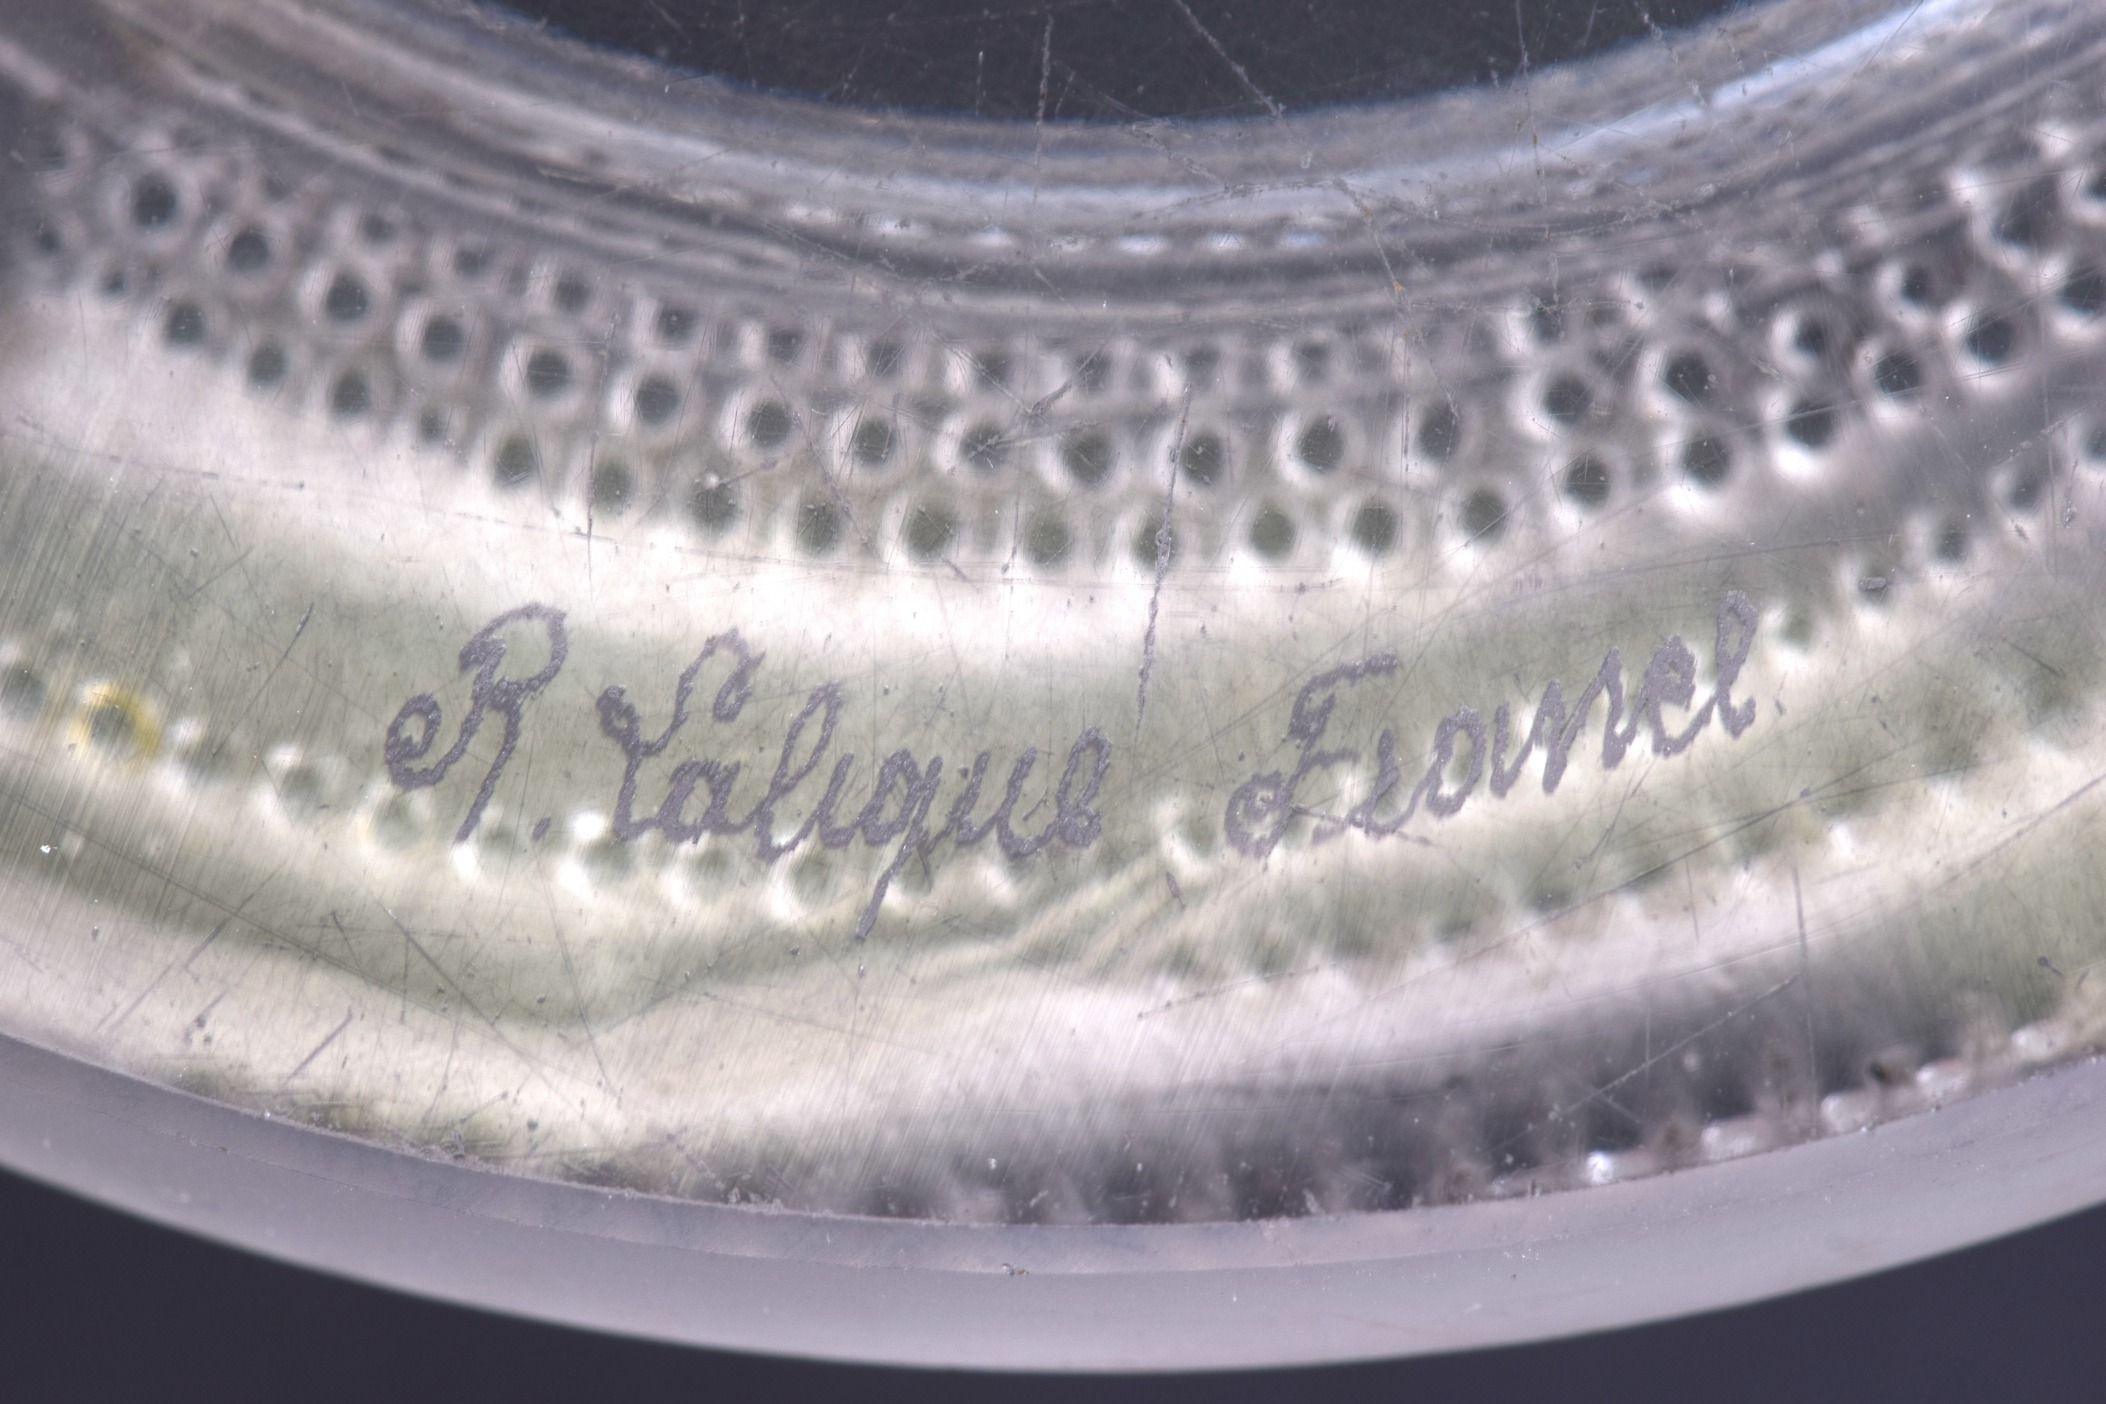 Lot 1 - AN ART DECO FRENCH RENE LALIQUE CIRCULAR DISH in the form of a stylised female with her hand